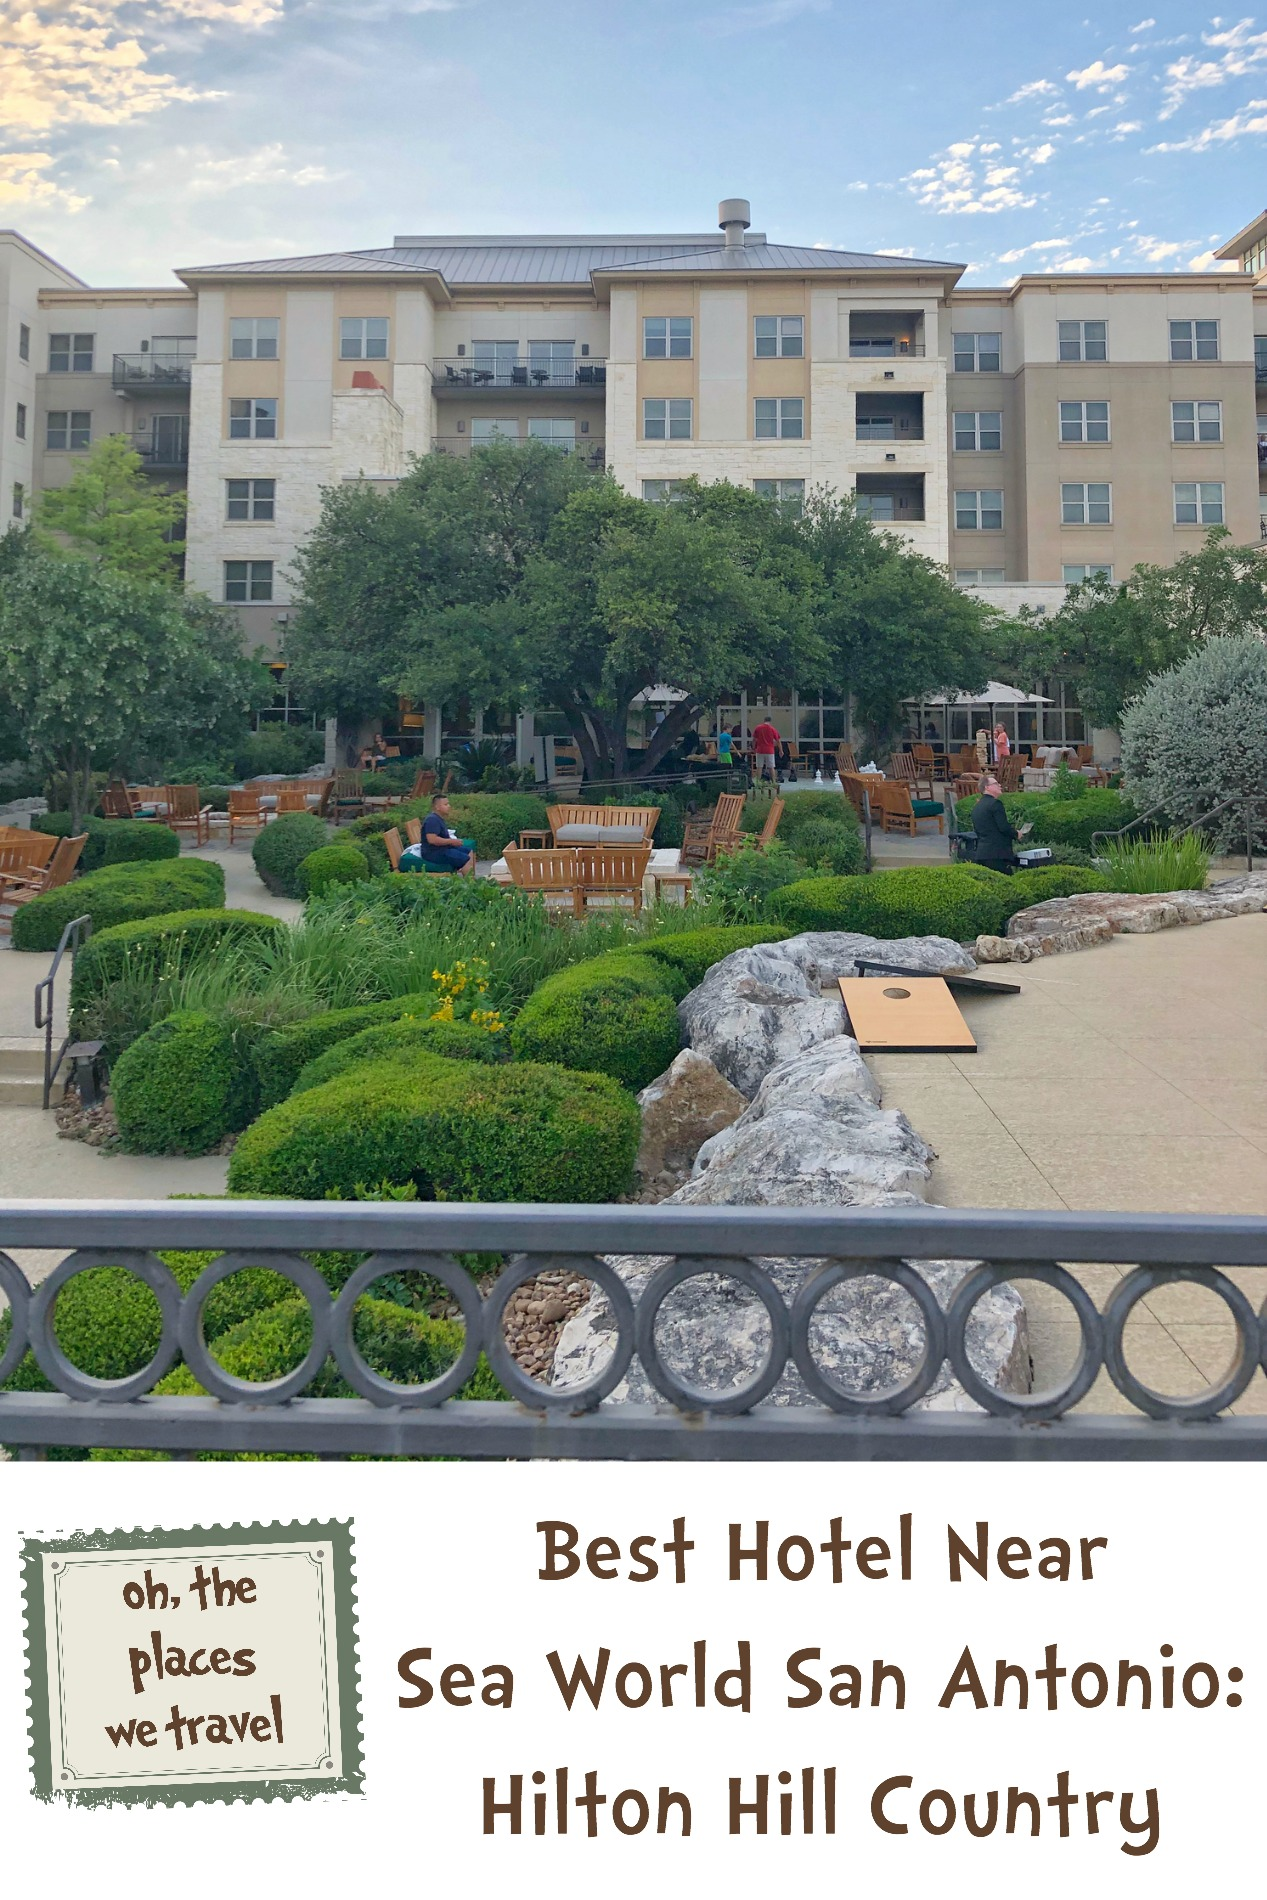 Best Hotel Near Sea World San Antonio